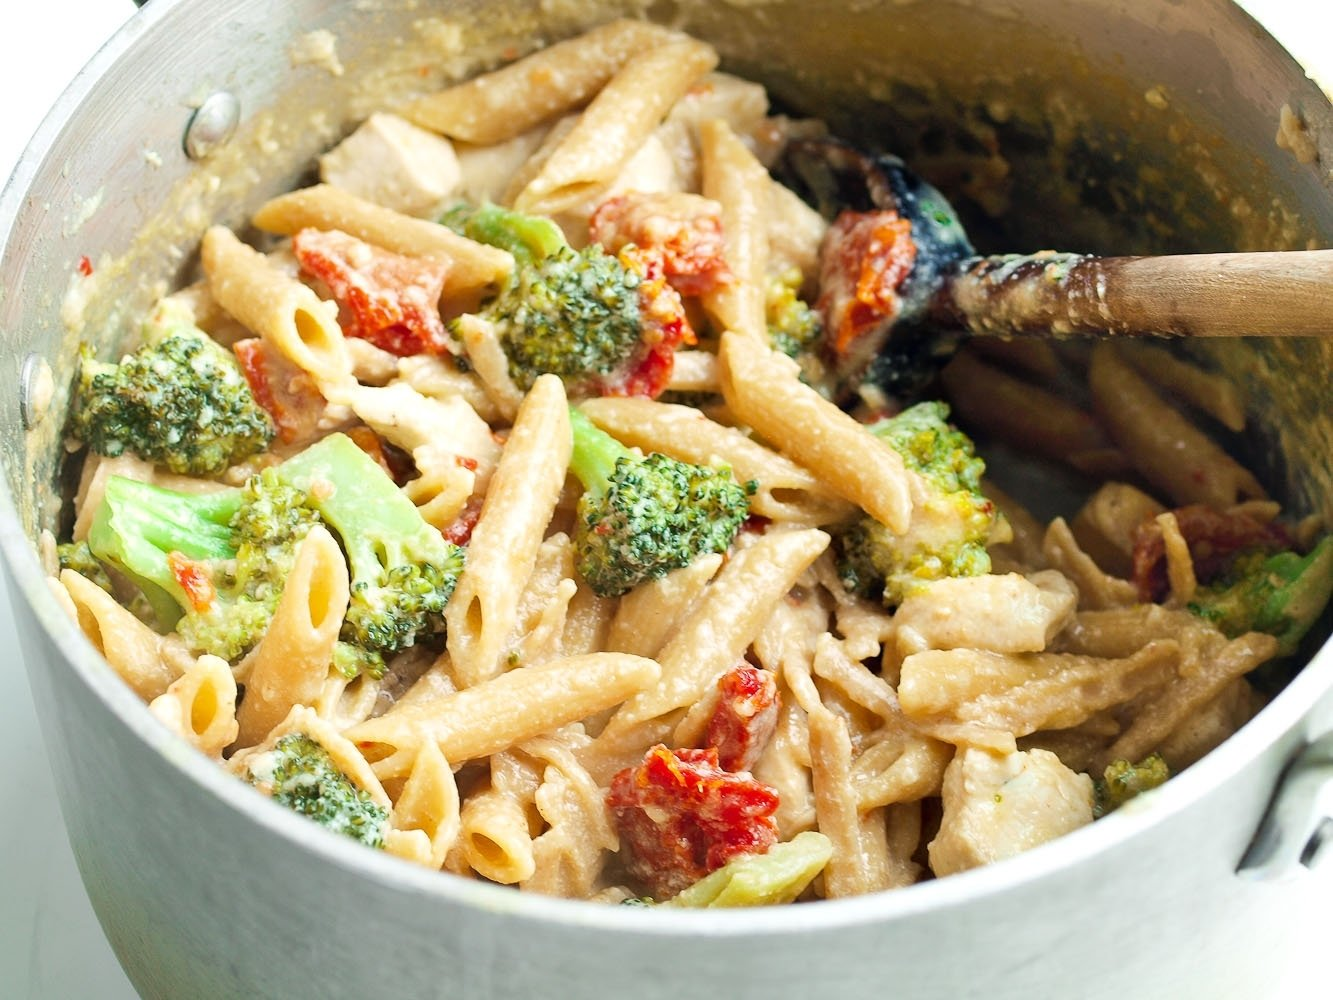 10 Fantastic Easy And Healthy Dinner Ideas tangy one pot chicken and veggie pasta dinner healthy ideas for kids 3